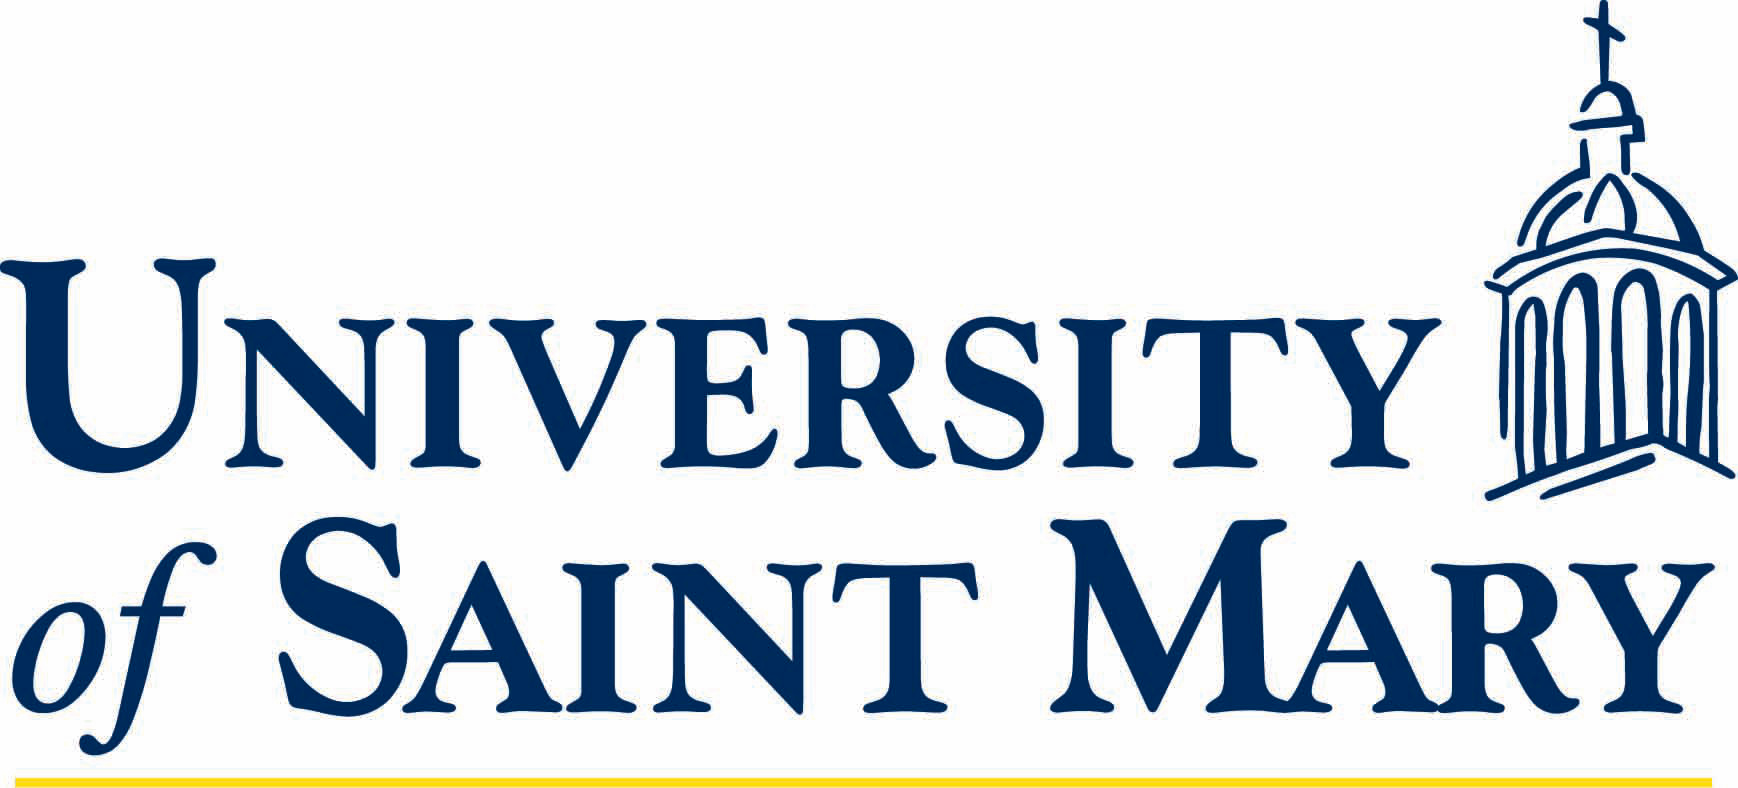 University Of St Mary >> The University Of Saint Mary Names Provost And Vice